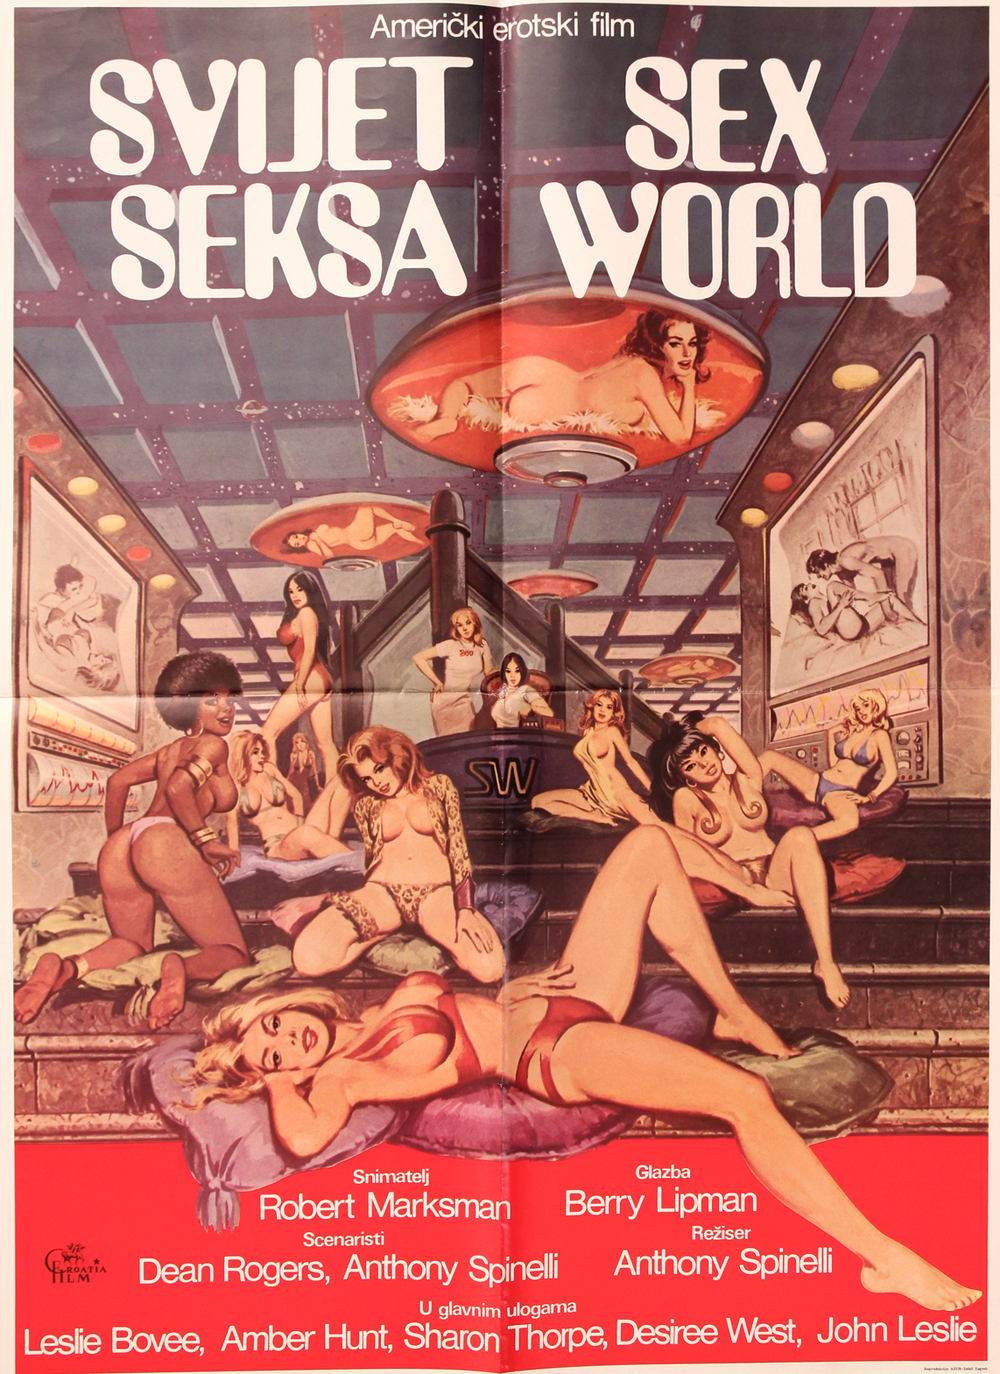 Sex World - Italian 2F Manifesto